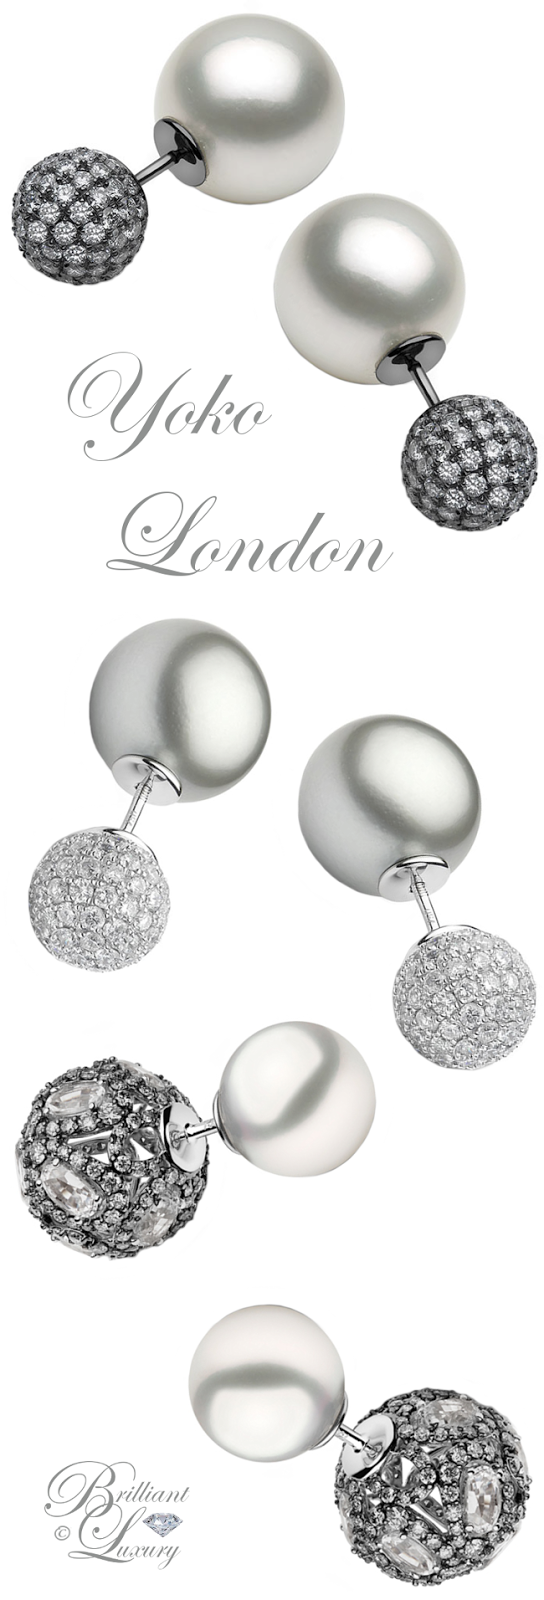 Brilliant Luxury ♦ Yoko London Duet Earrings